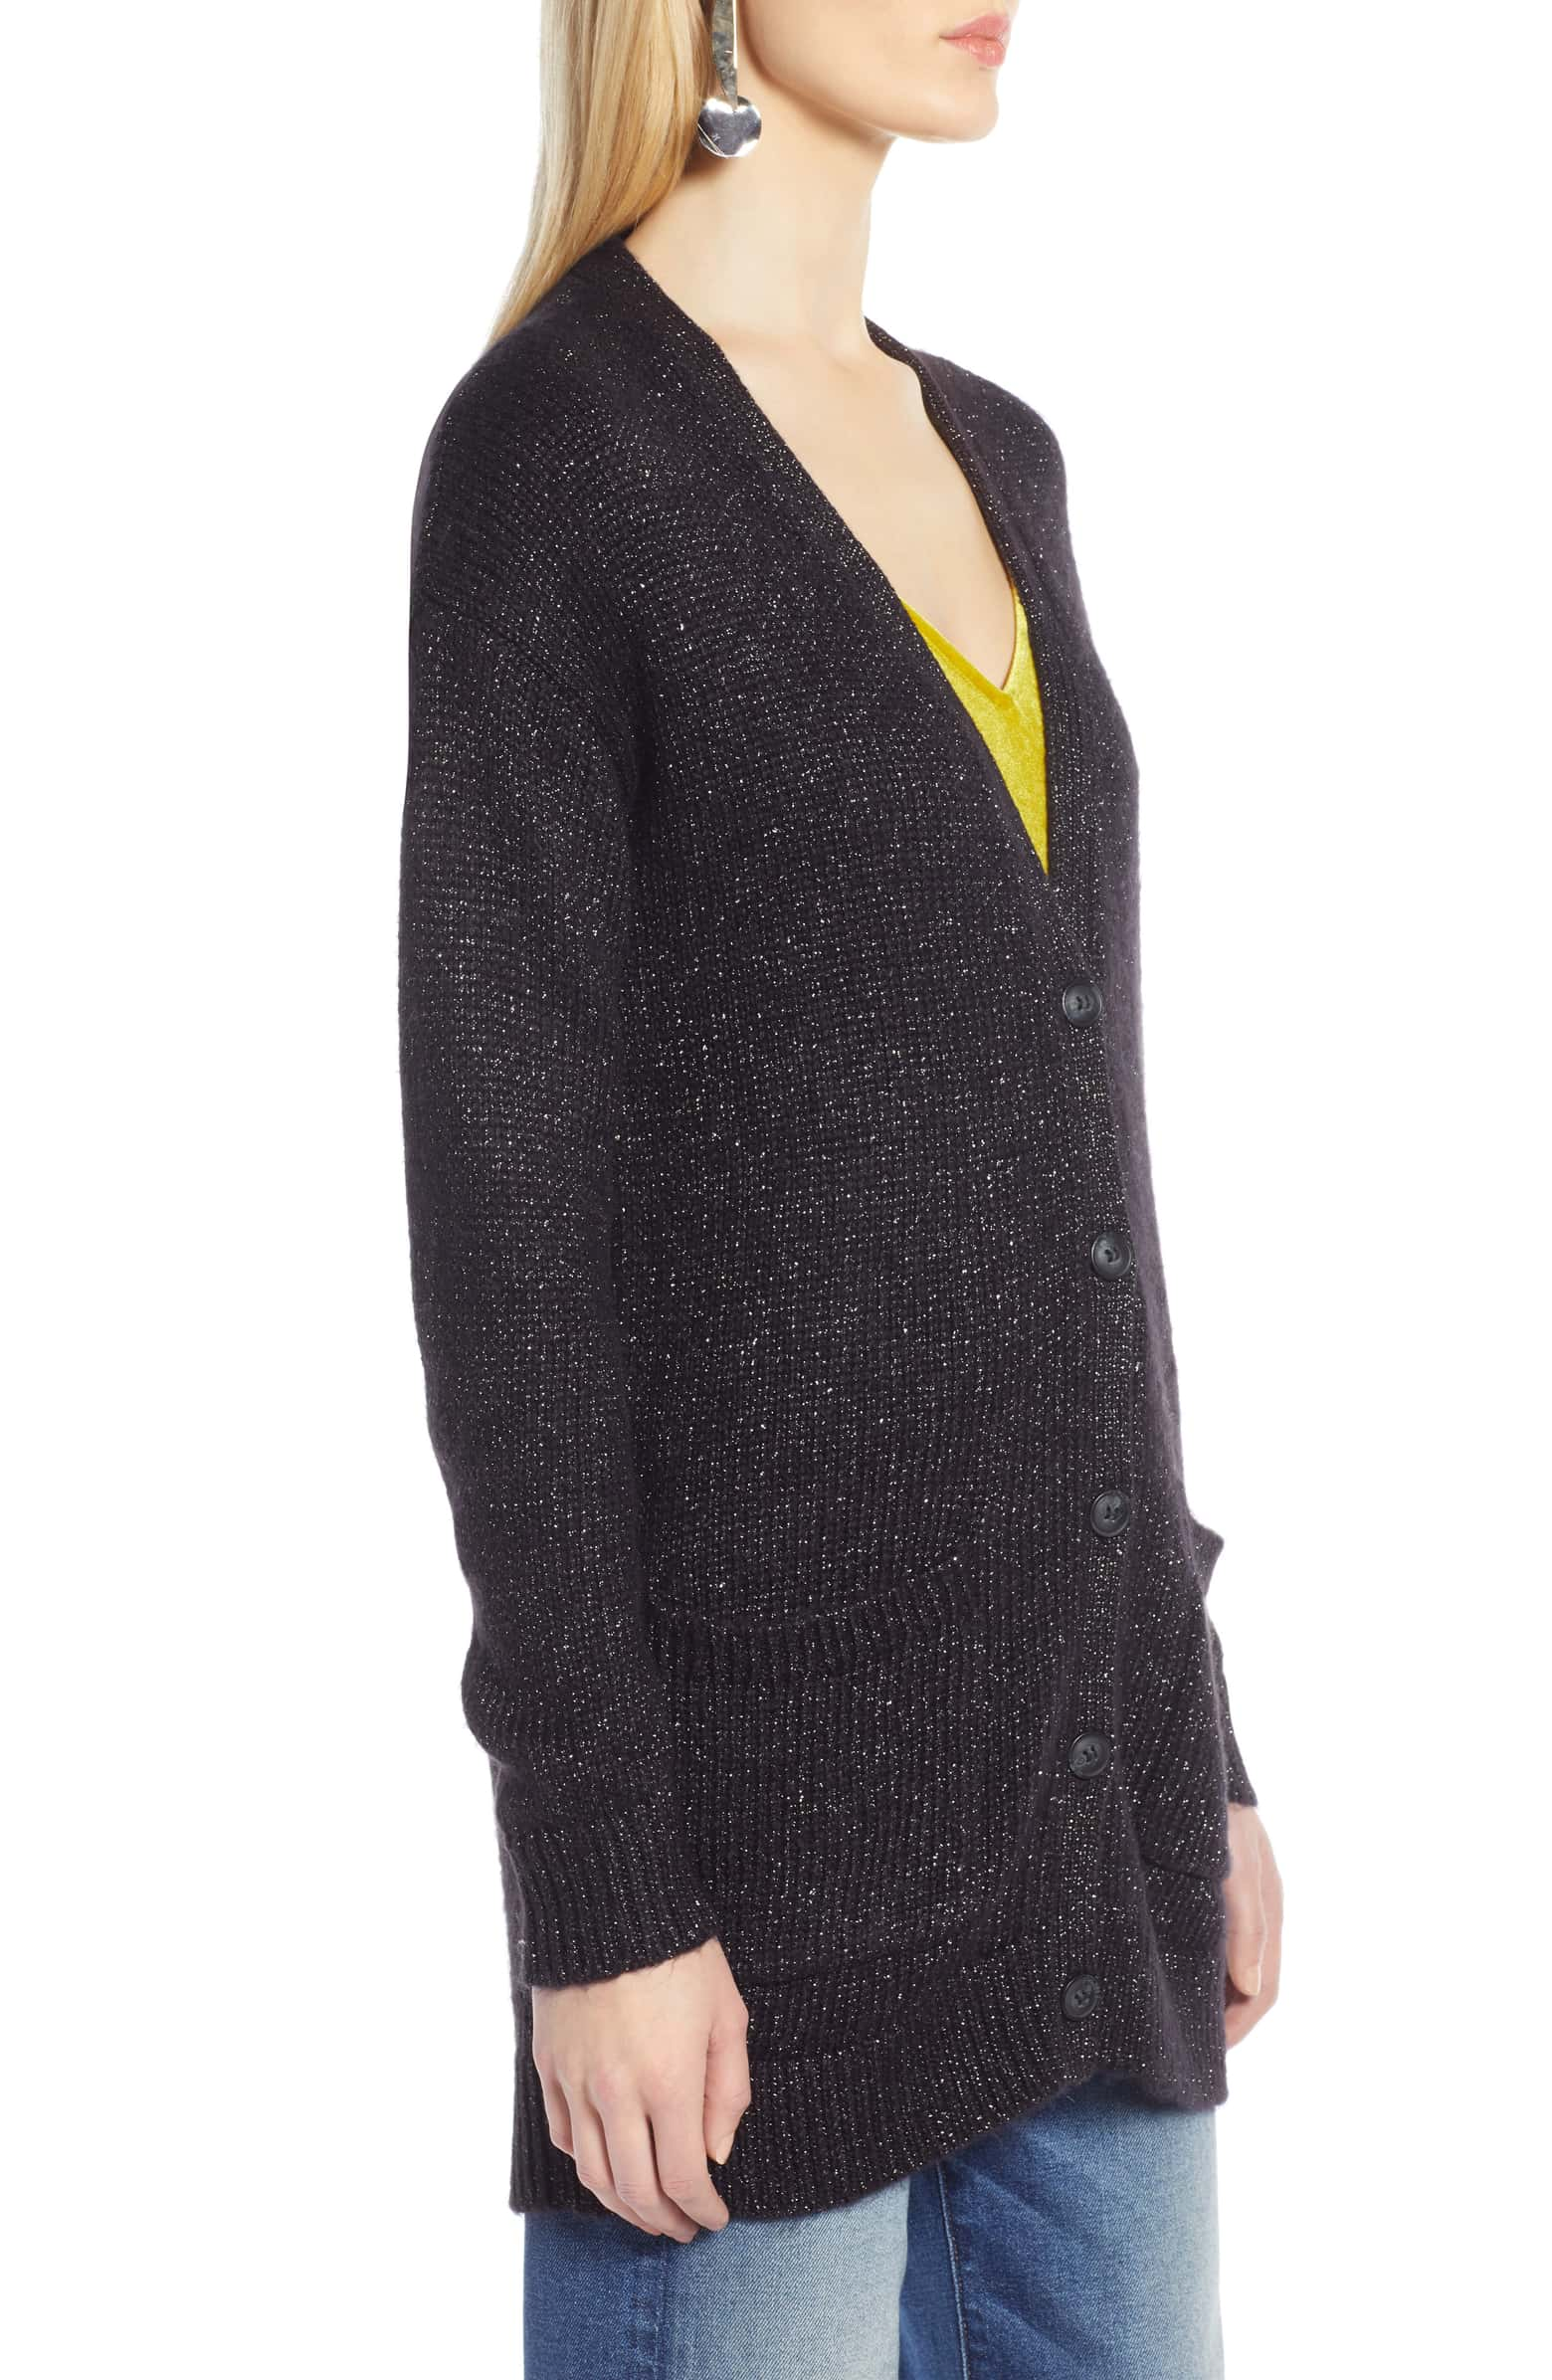 (Brand New NWOT -- Sample) Halogen Sparkle Cardigan, Size XS